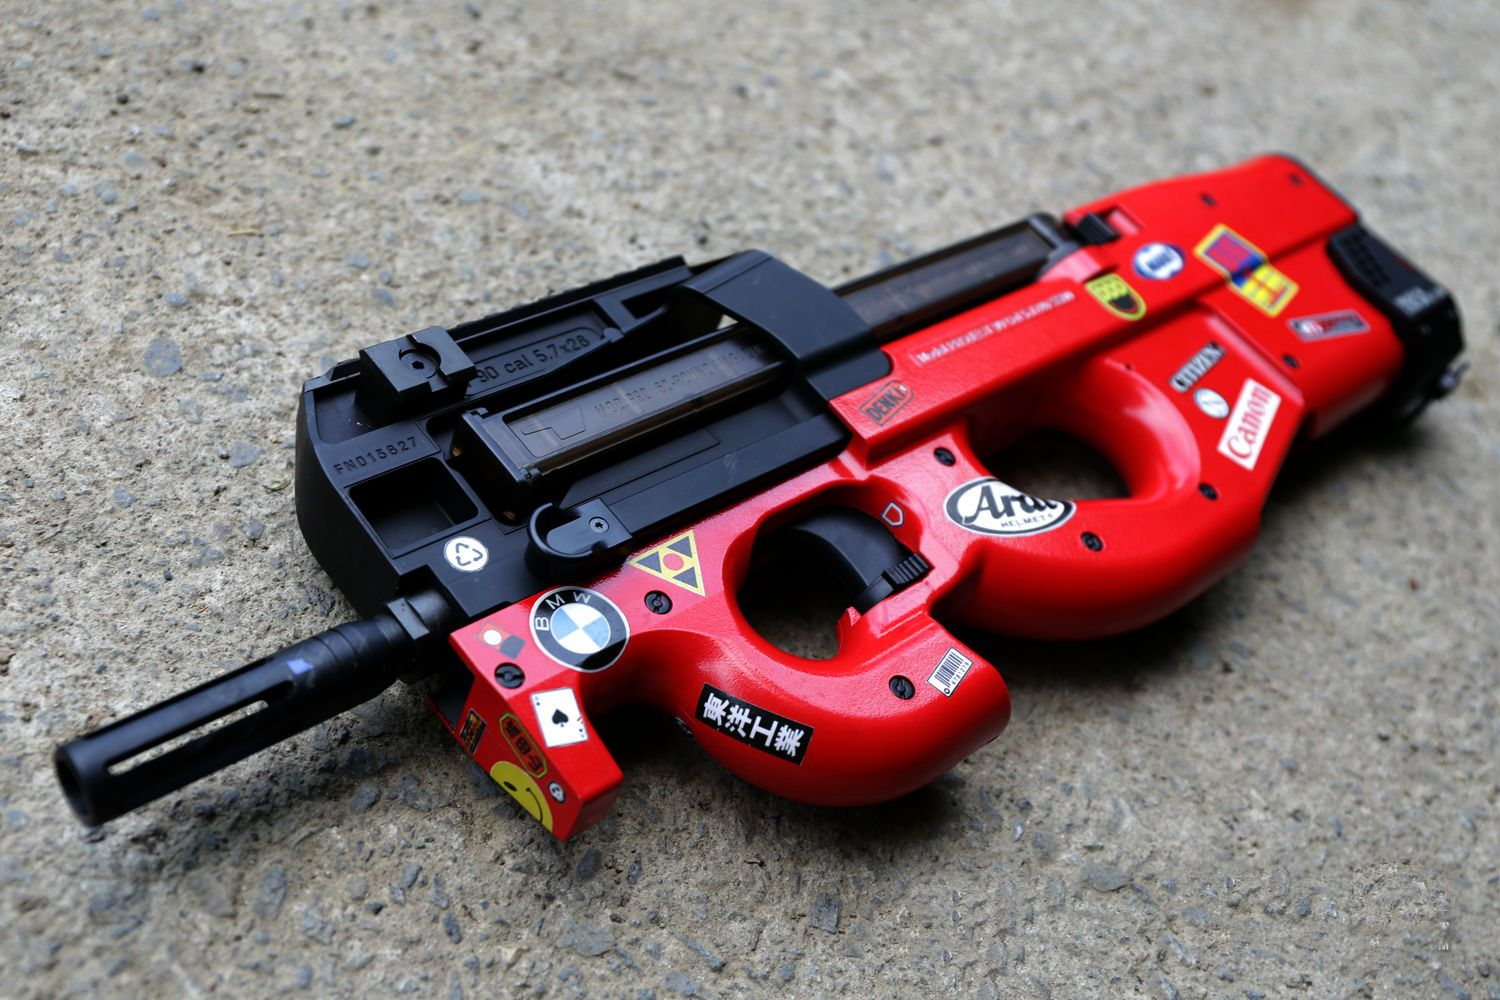 Akira Skin P90 Guns Pinterest Airsoft And Wiring Diagram In Addition V2 Gearbox On